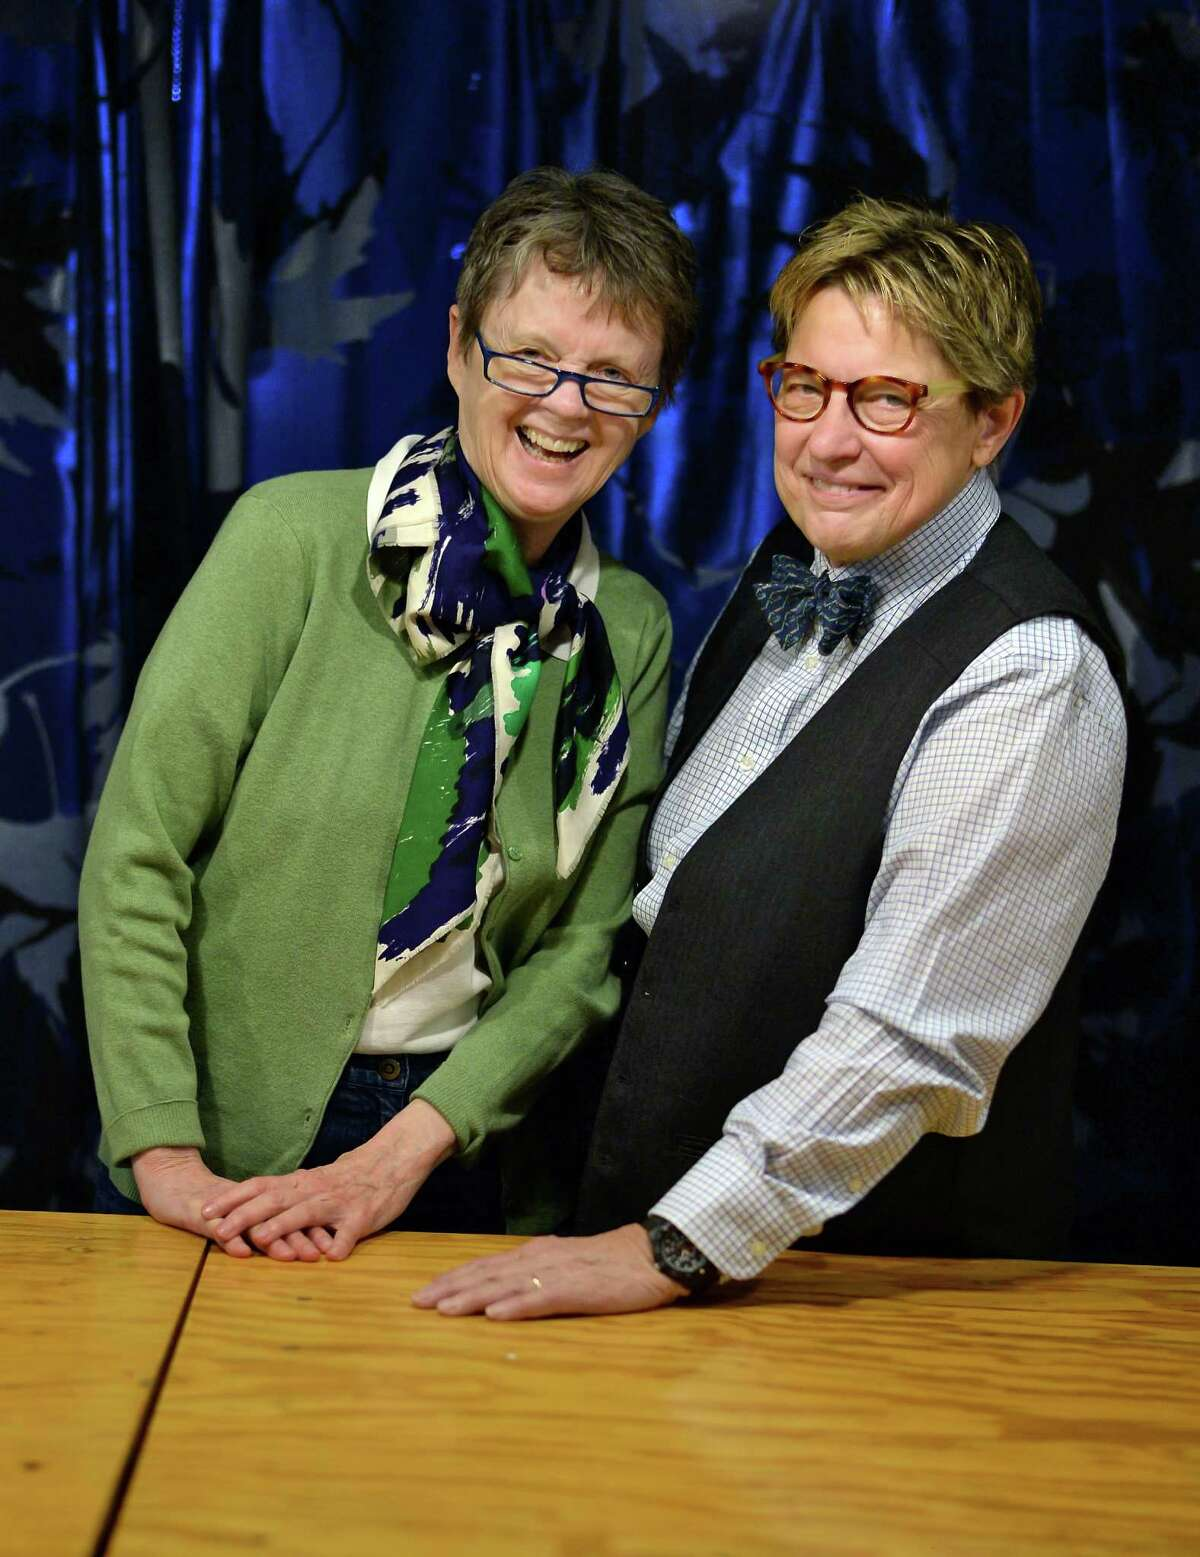 Co-directors Claudia Bruce, left, and Linda Mussmann at their Time and Space Limited arts center on Tuesday, May 24, 2016, in Hudson, NY. (John Carl D'Annibale / Times Union)